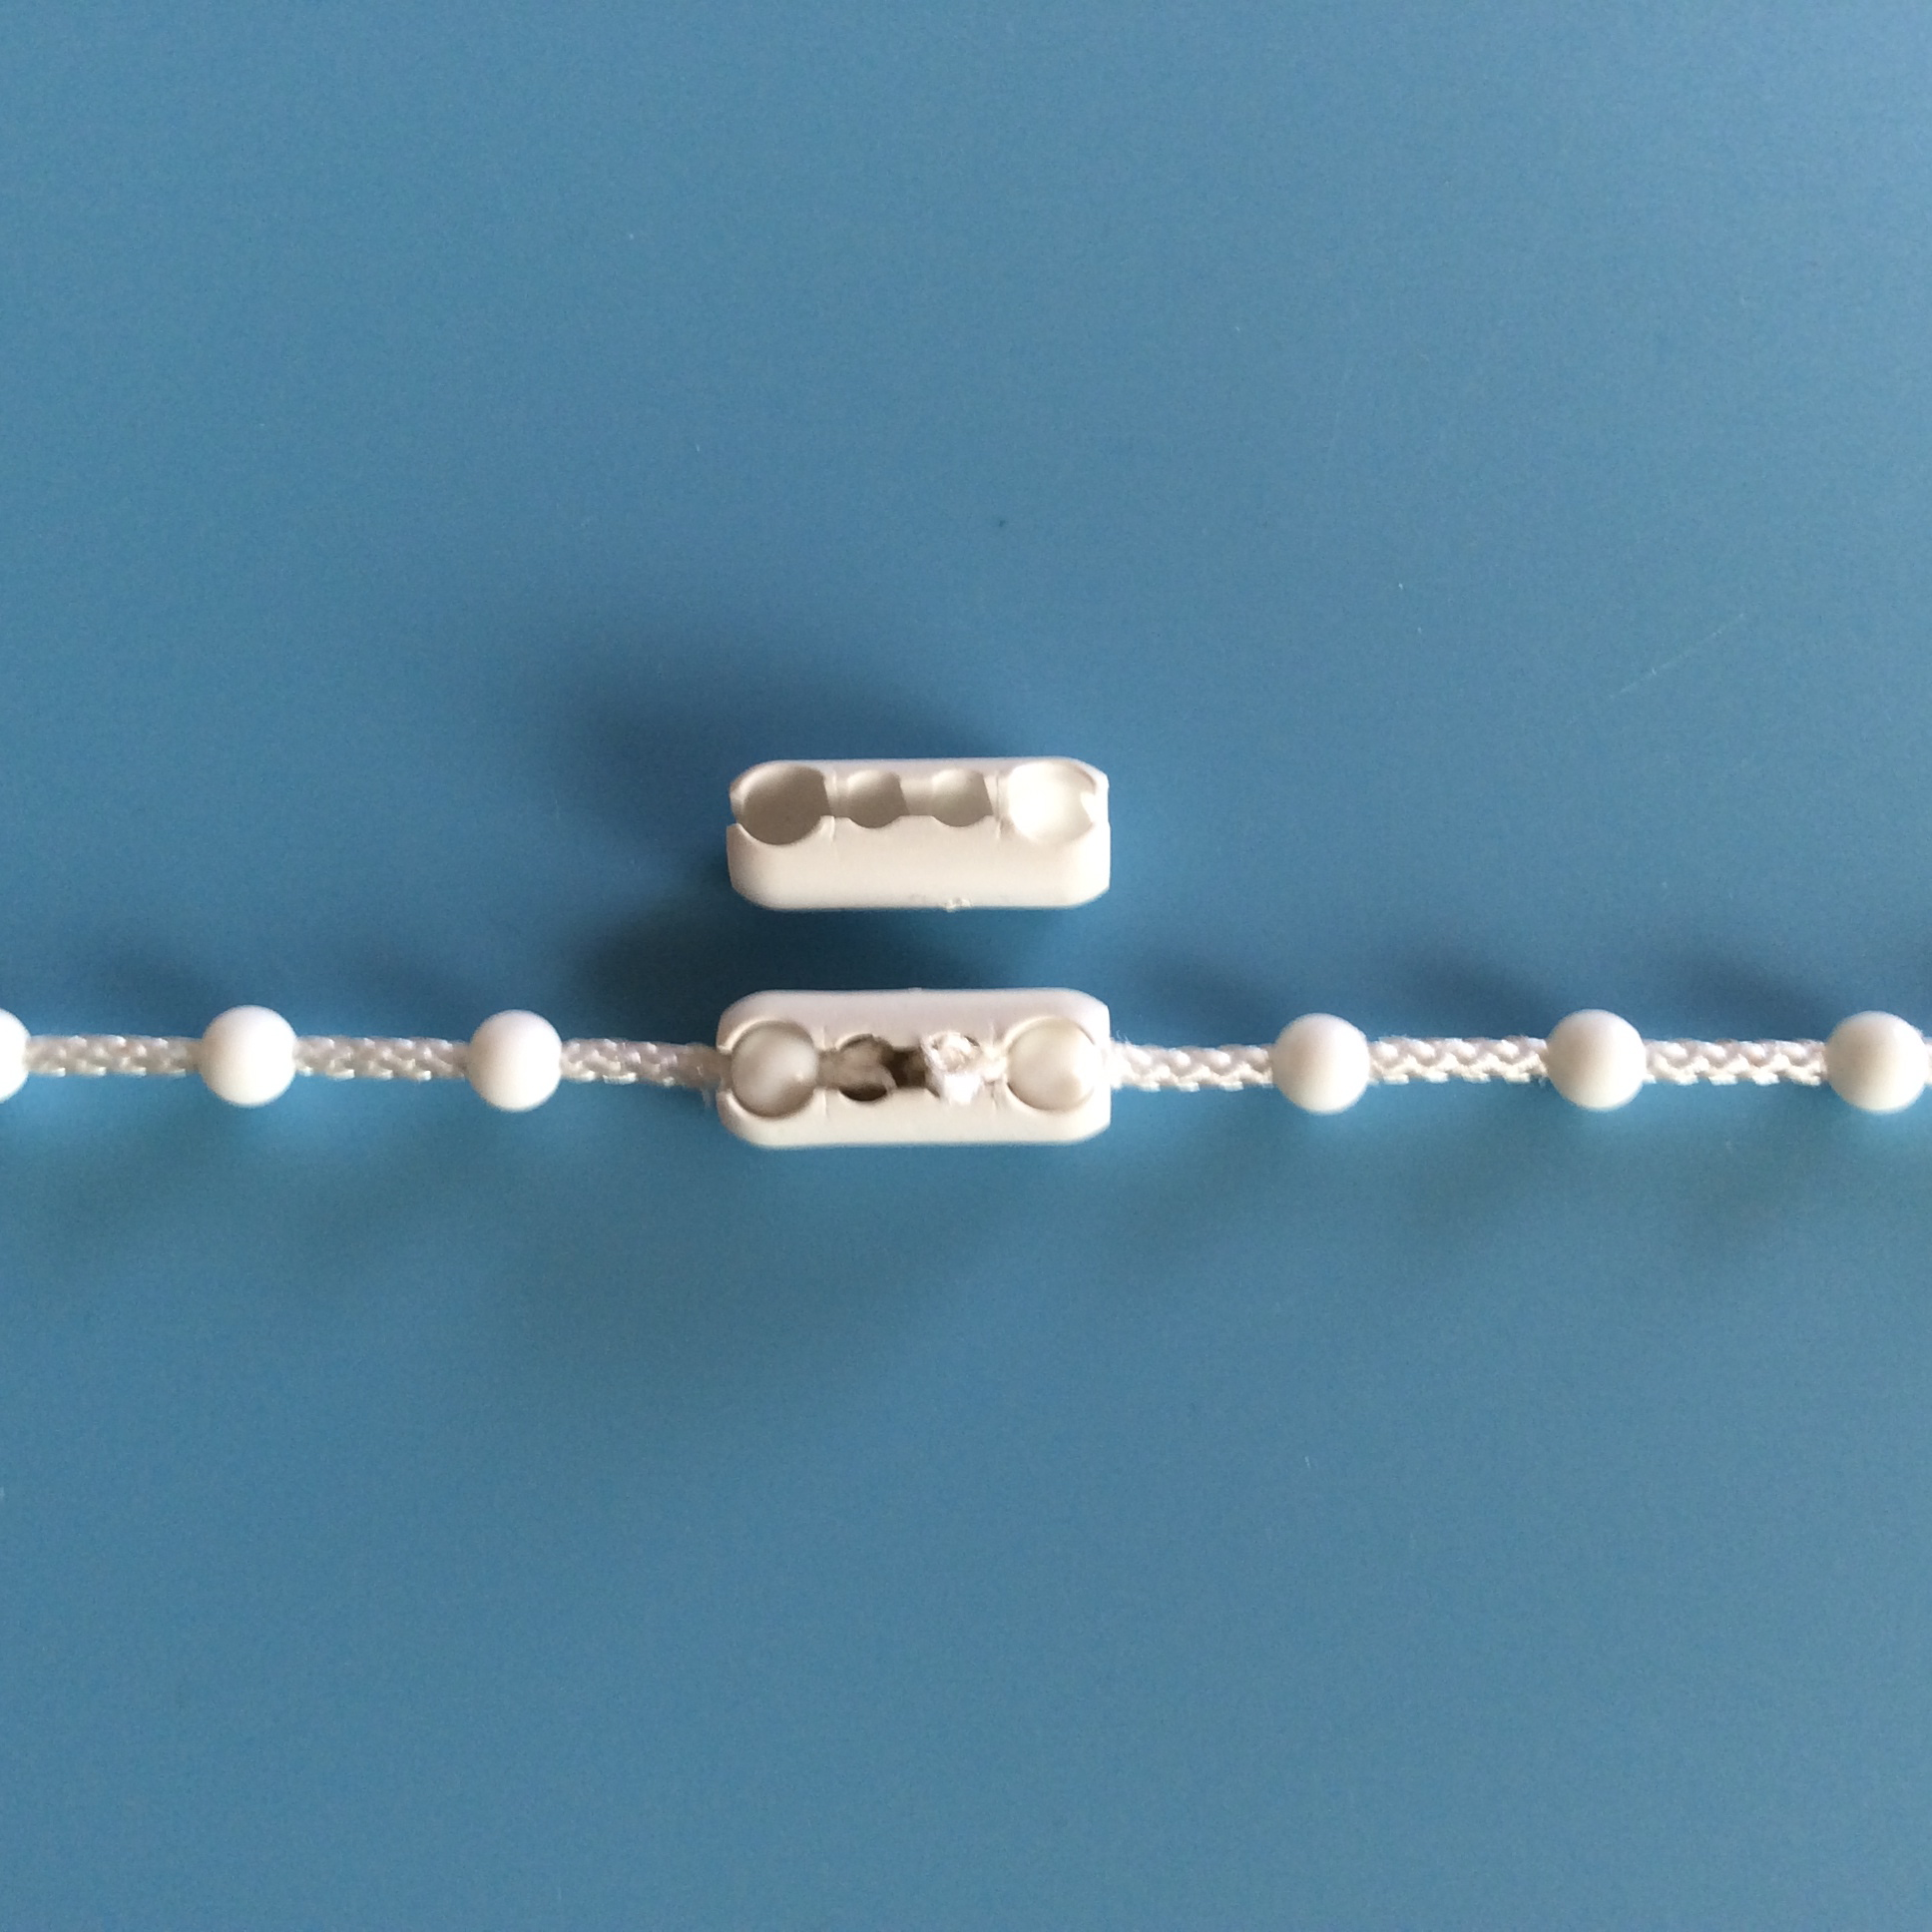 Roller And Roman Blind Plastic Safety Breaker Chain Connecters